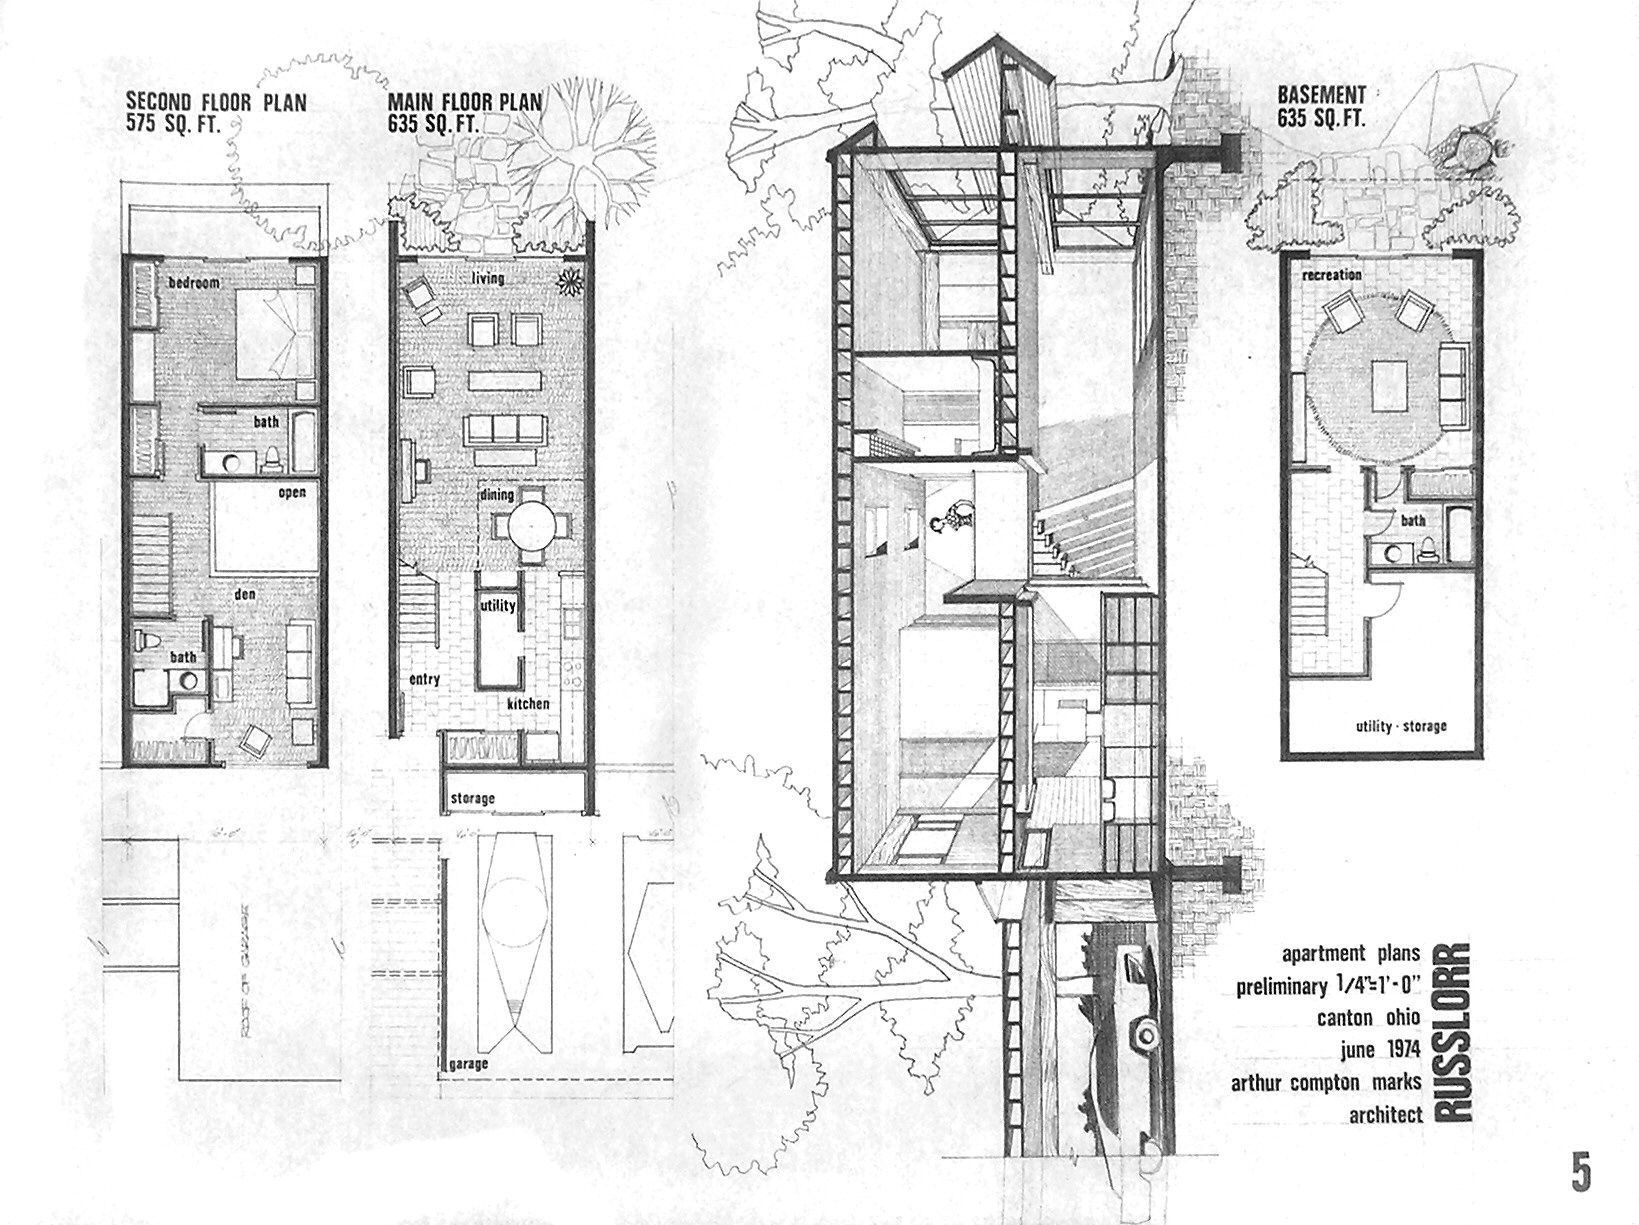 Terrific narrow row house plans ideas best inspiration for Row house layout plan